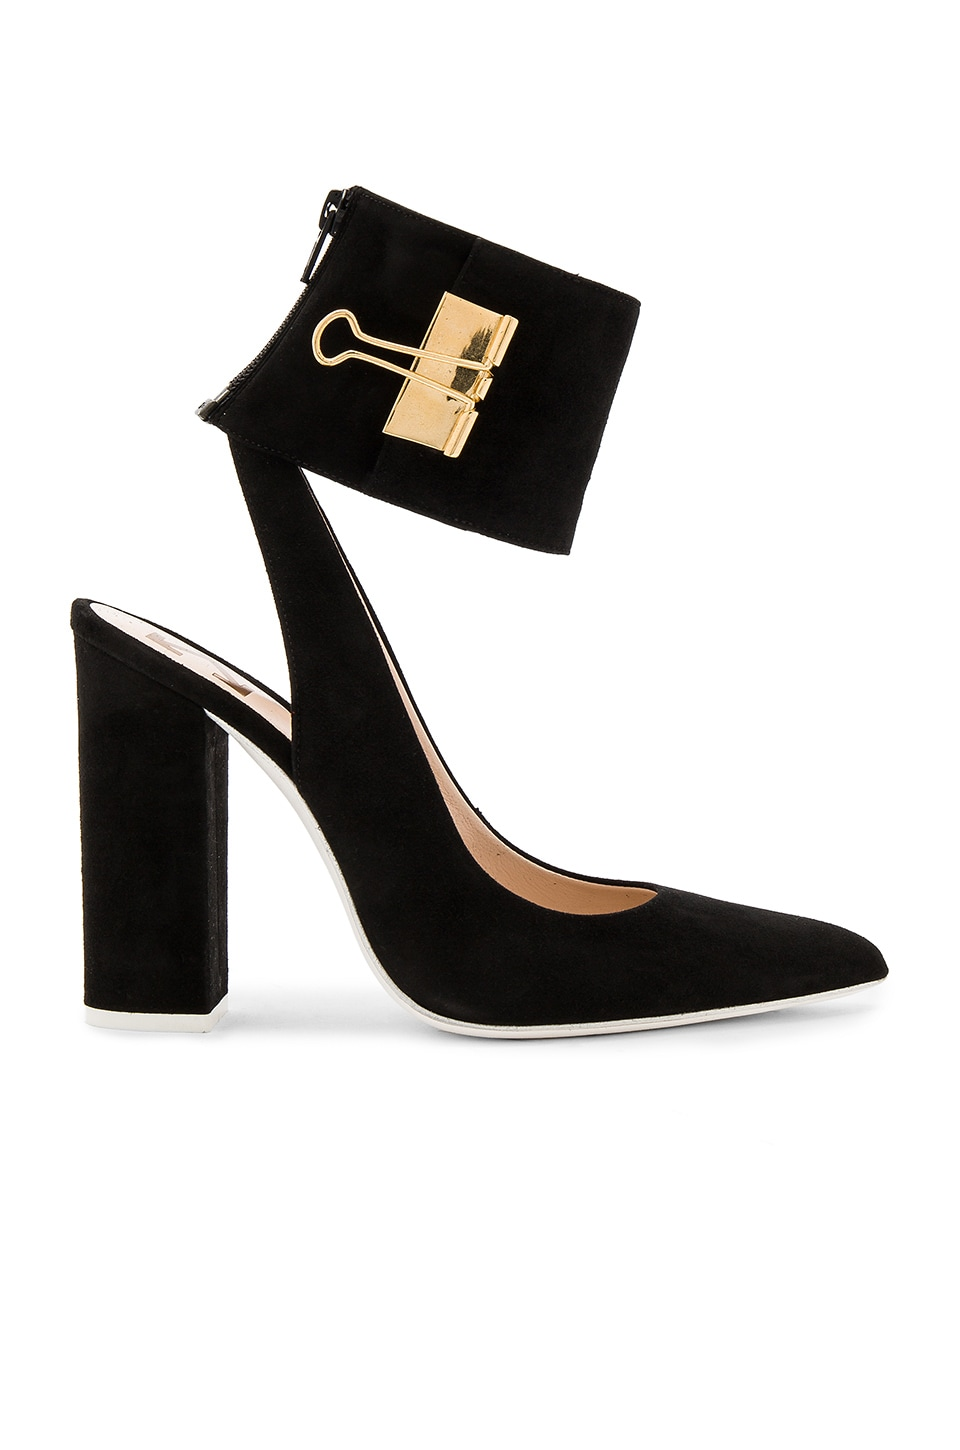 OFF-WHITE Pump Big Heel in Black & Gold